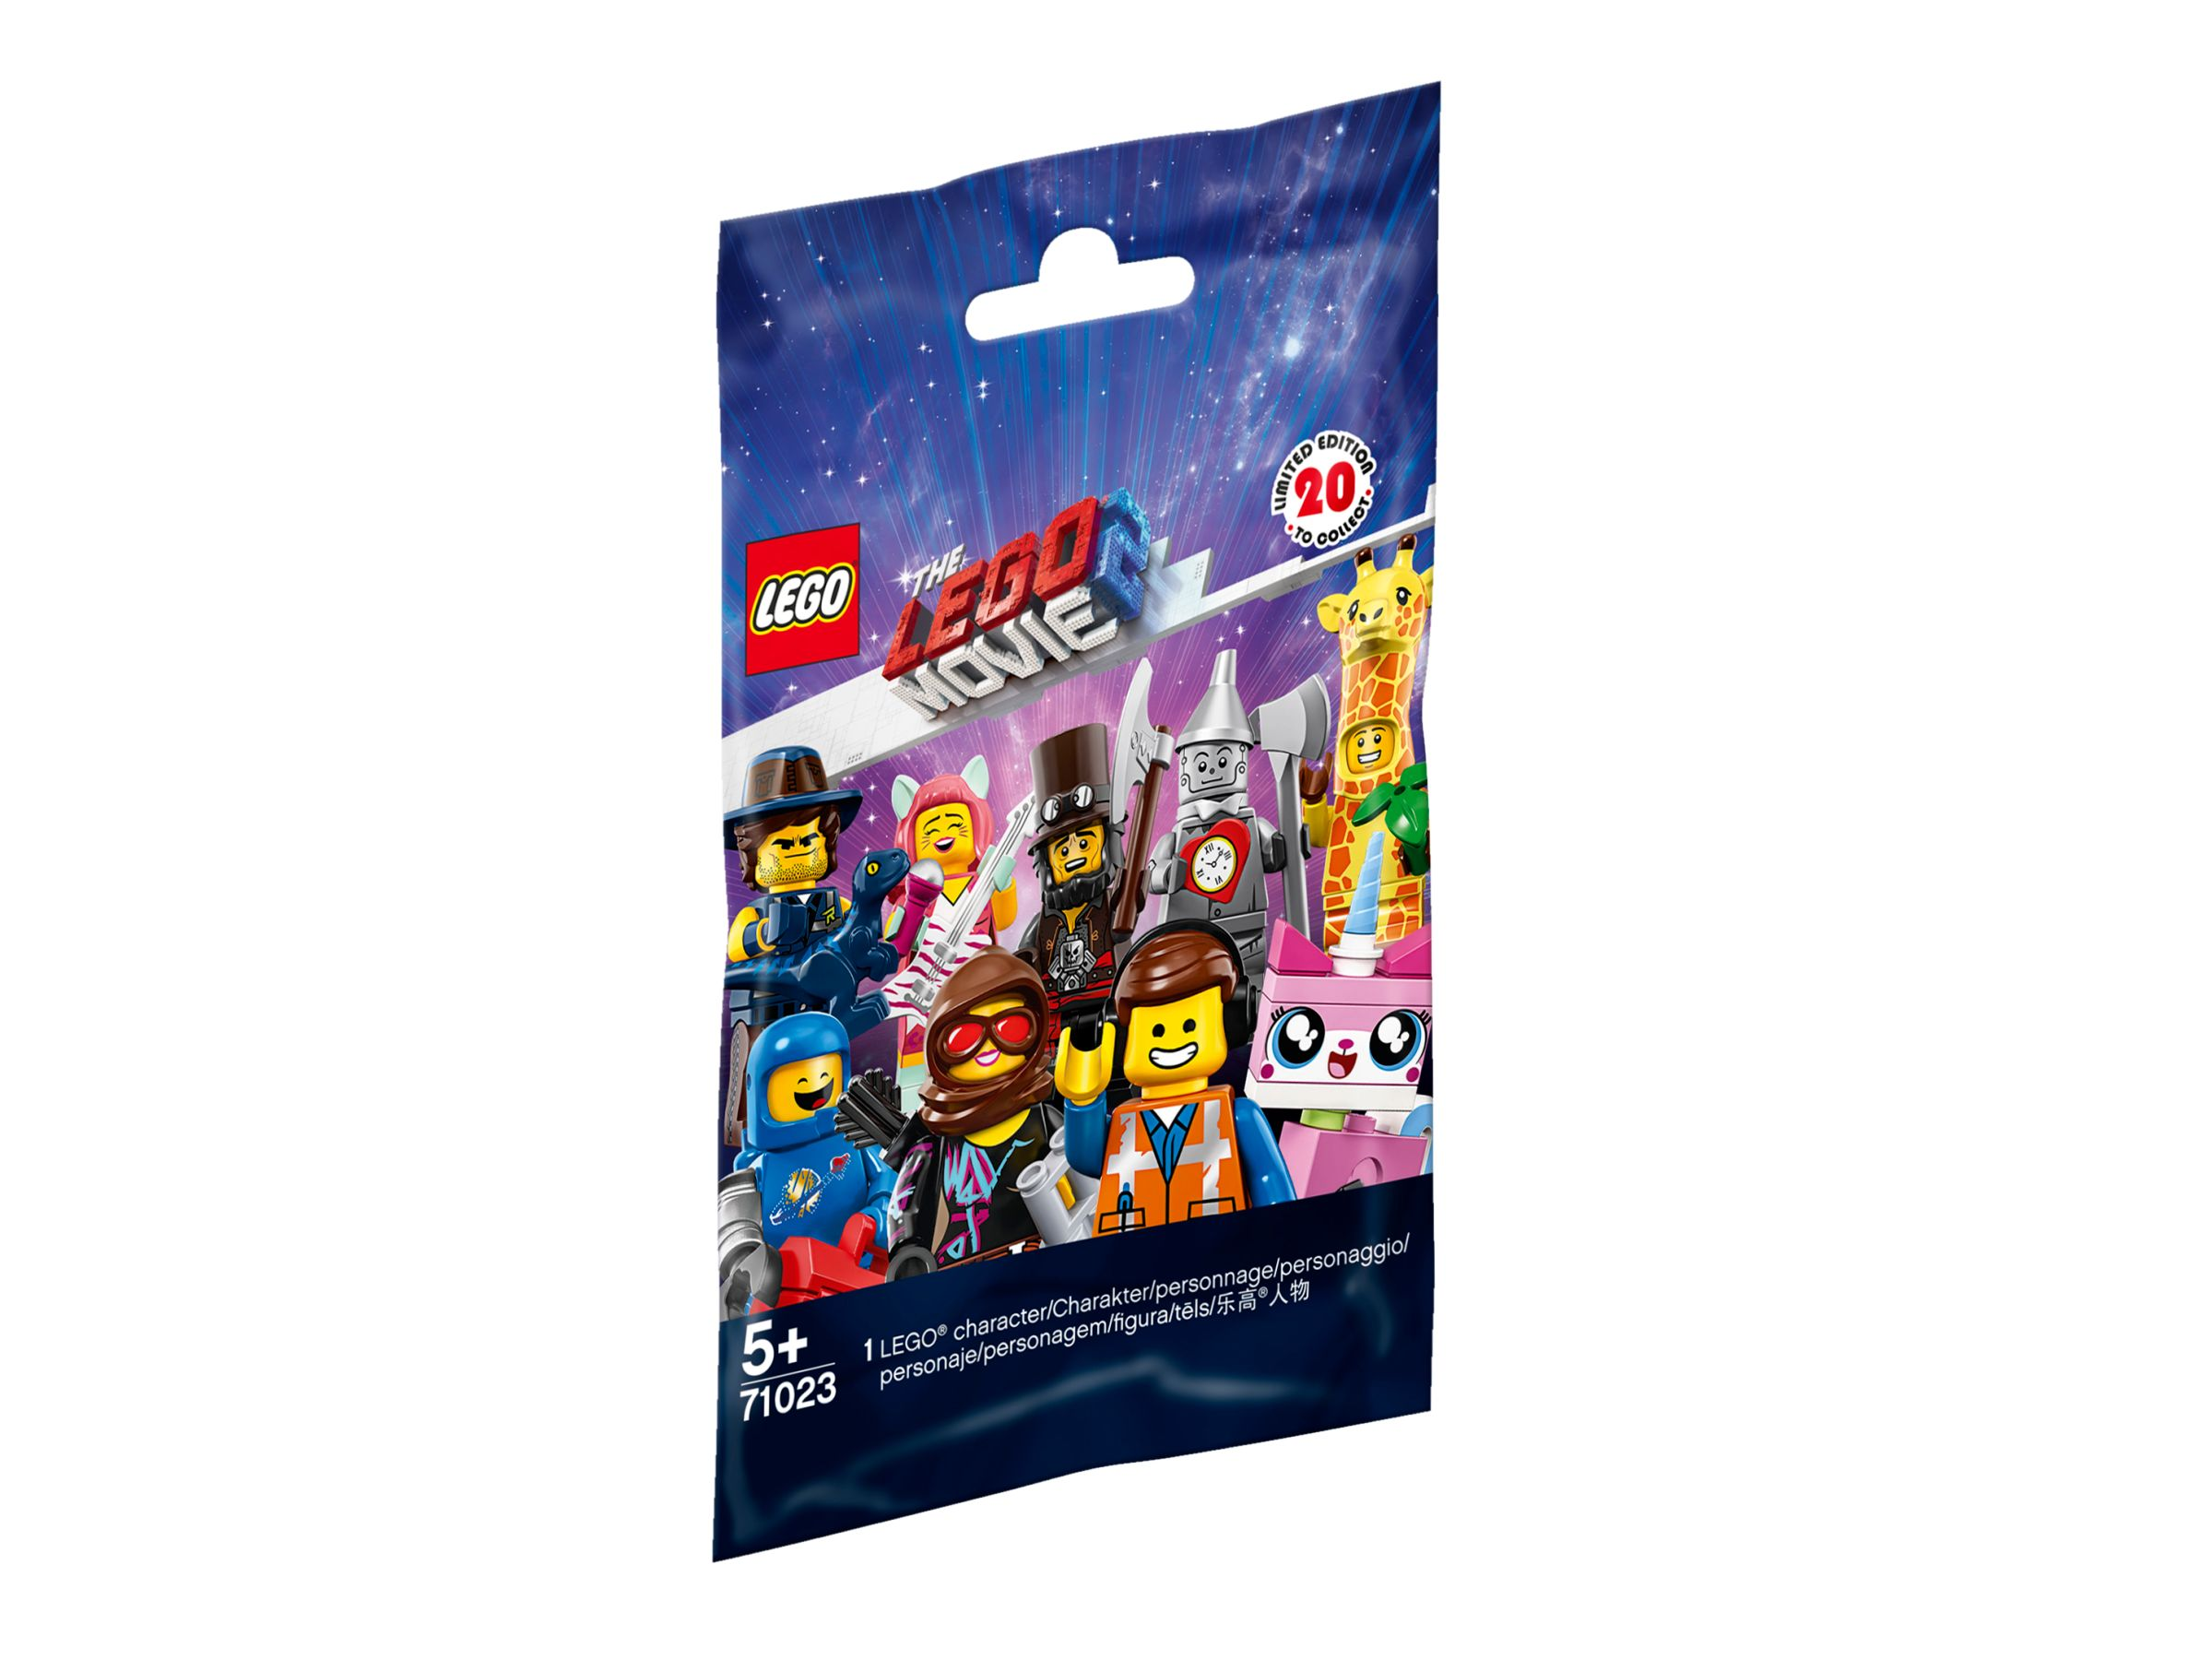 LEGO Collectable Minifigures 71023 THE LEGO® MOVIE 2 - 60er Box LEGO_71023_alt1.jpg